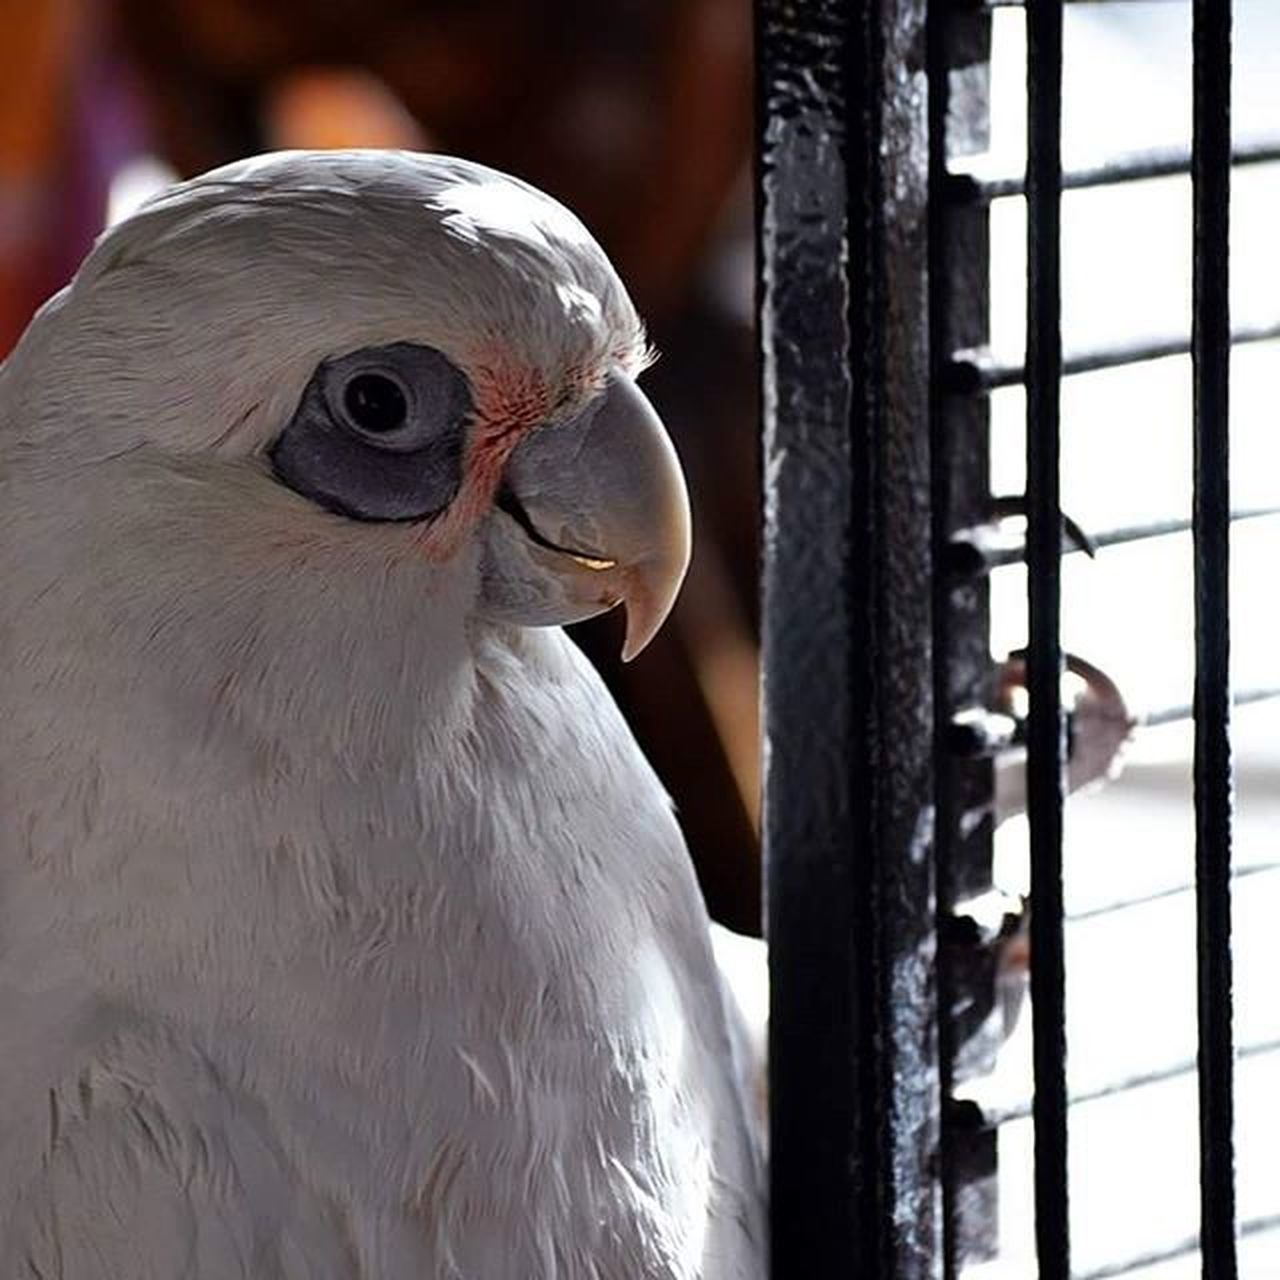 bird, beak, close-up, animal head, focus on foreground, looking at camera, portrait, bird of prey, animal themes, day, trapped, beauty in nature, no people, nature, outdoors, mammal